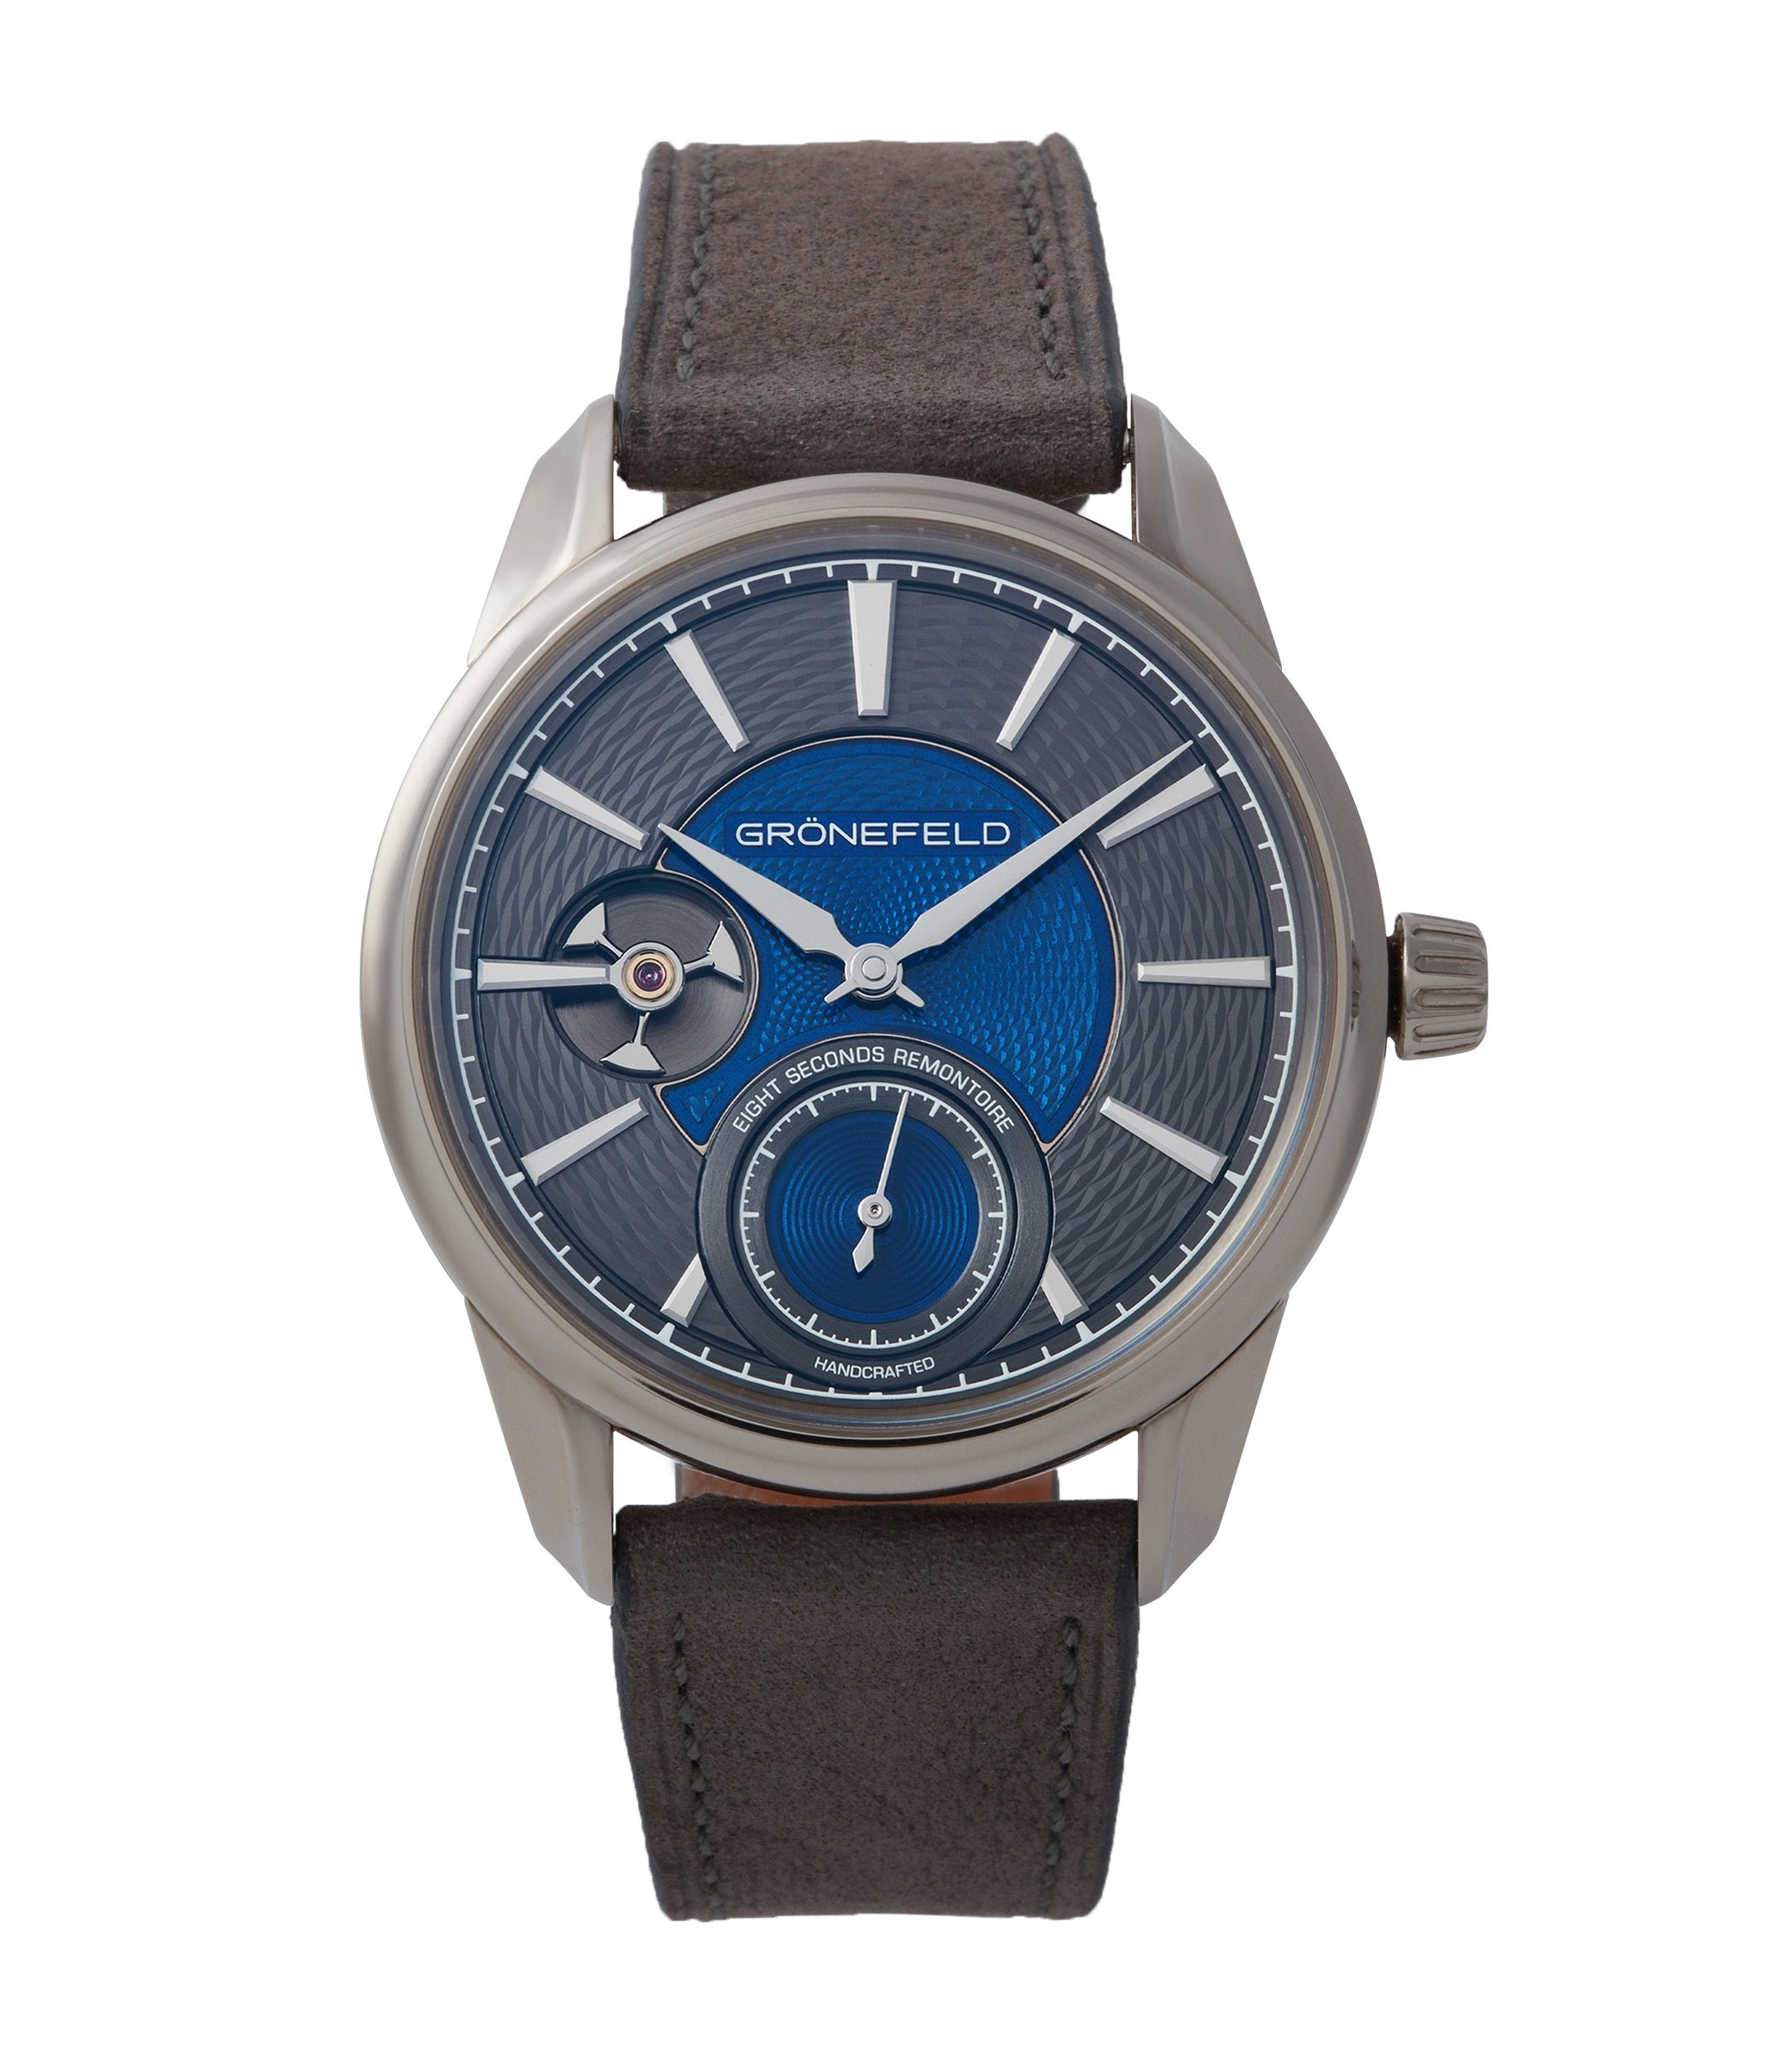 eight -seconds Remontoire Gronefeld 1941 blue grey Voutilainen dial pre-owned for sale online A Collected Man London UK specialist of rare watches